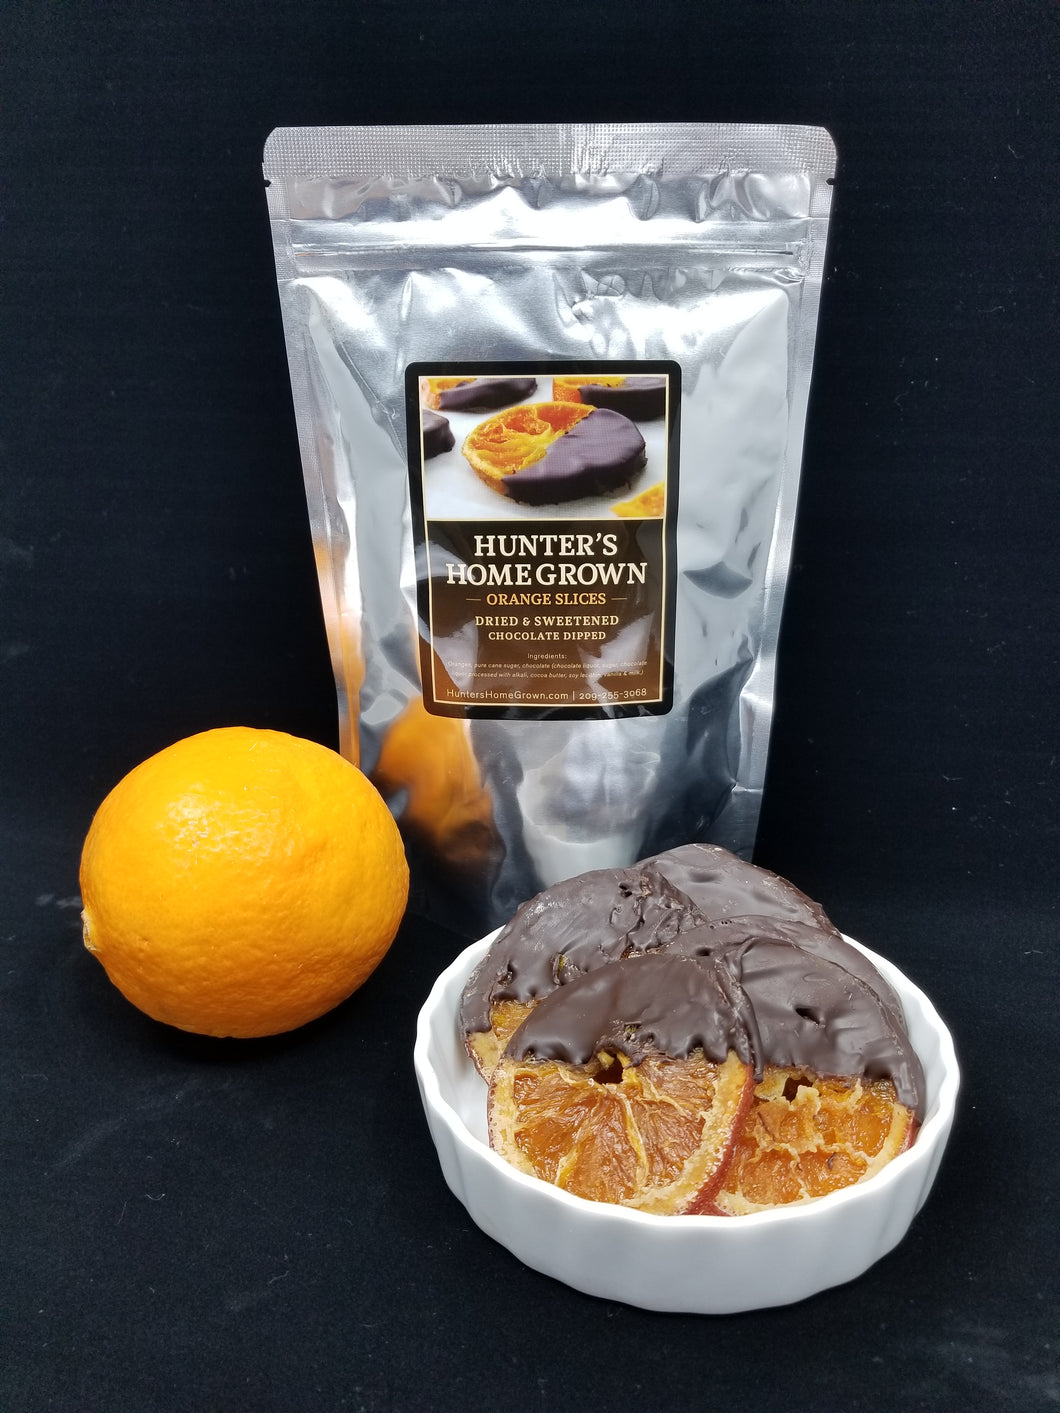 Sweetened Orange Slices Dipped in Dark Chocolate